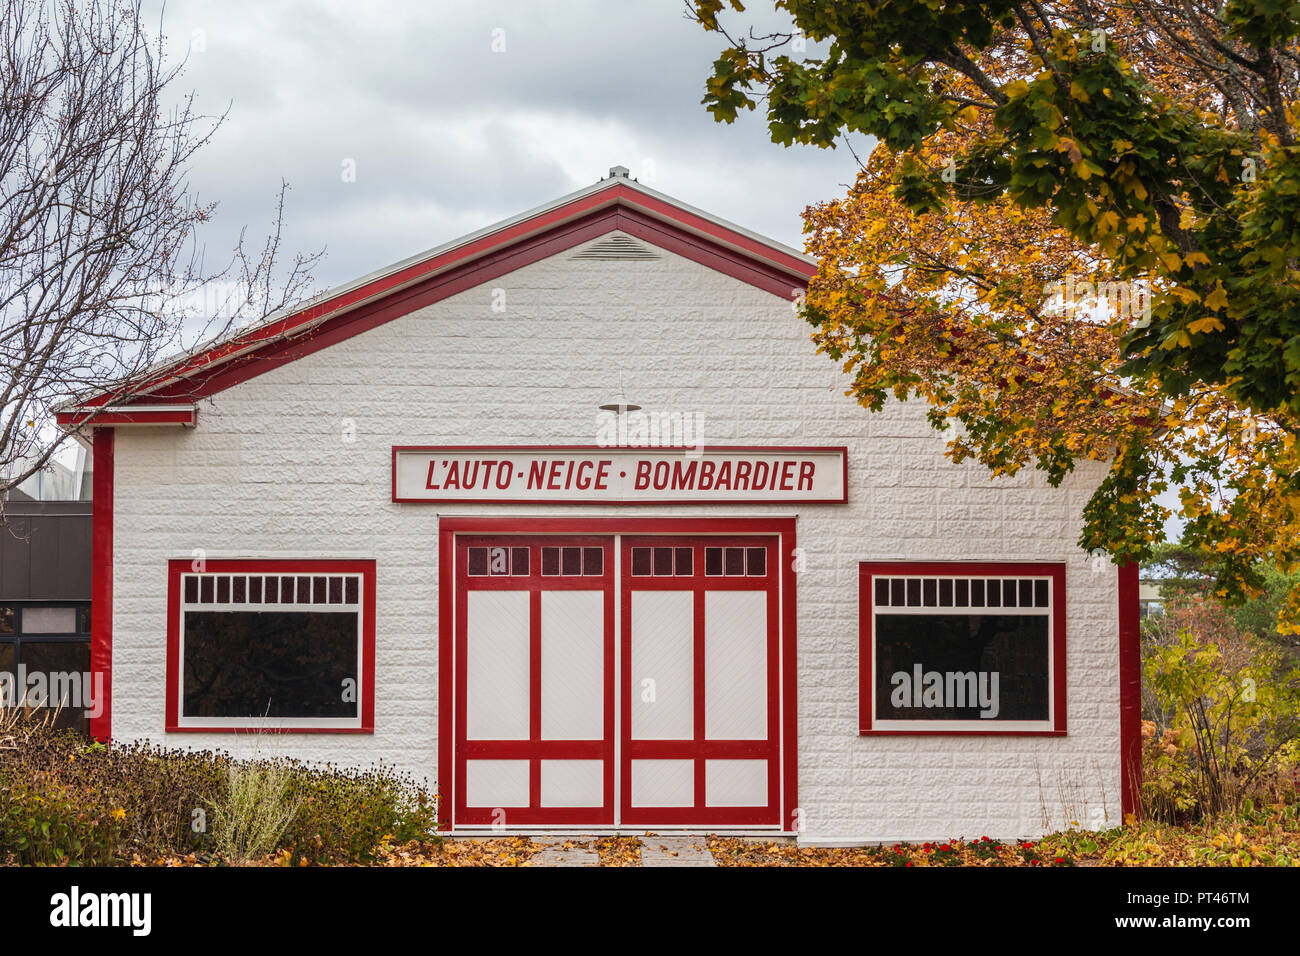 Canada, Quebec, Estrie Region, Valcourt, Musee J Armand Bombardier, museum dedicated to the inventor of the modern snowmobile, inventor's original garage, exterior - Stock Image